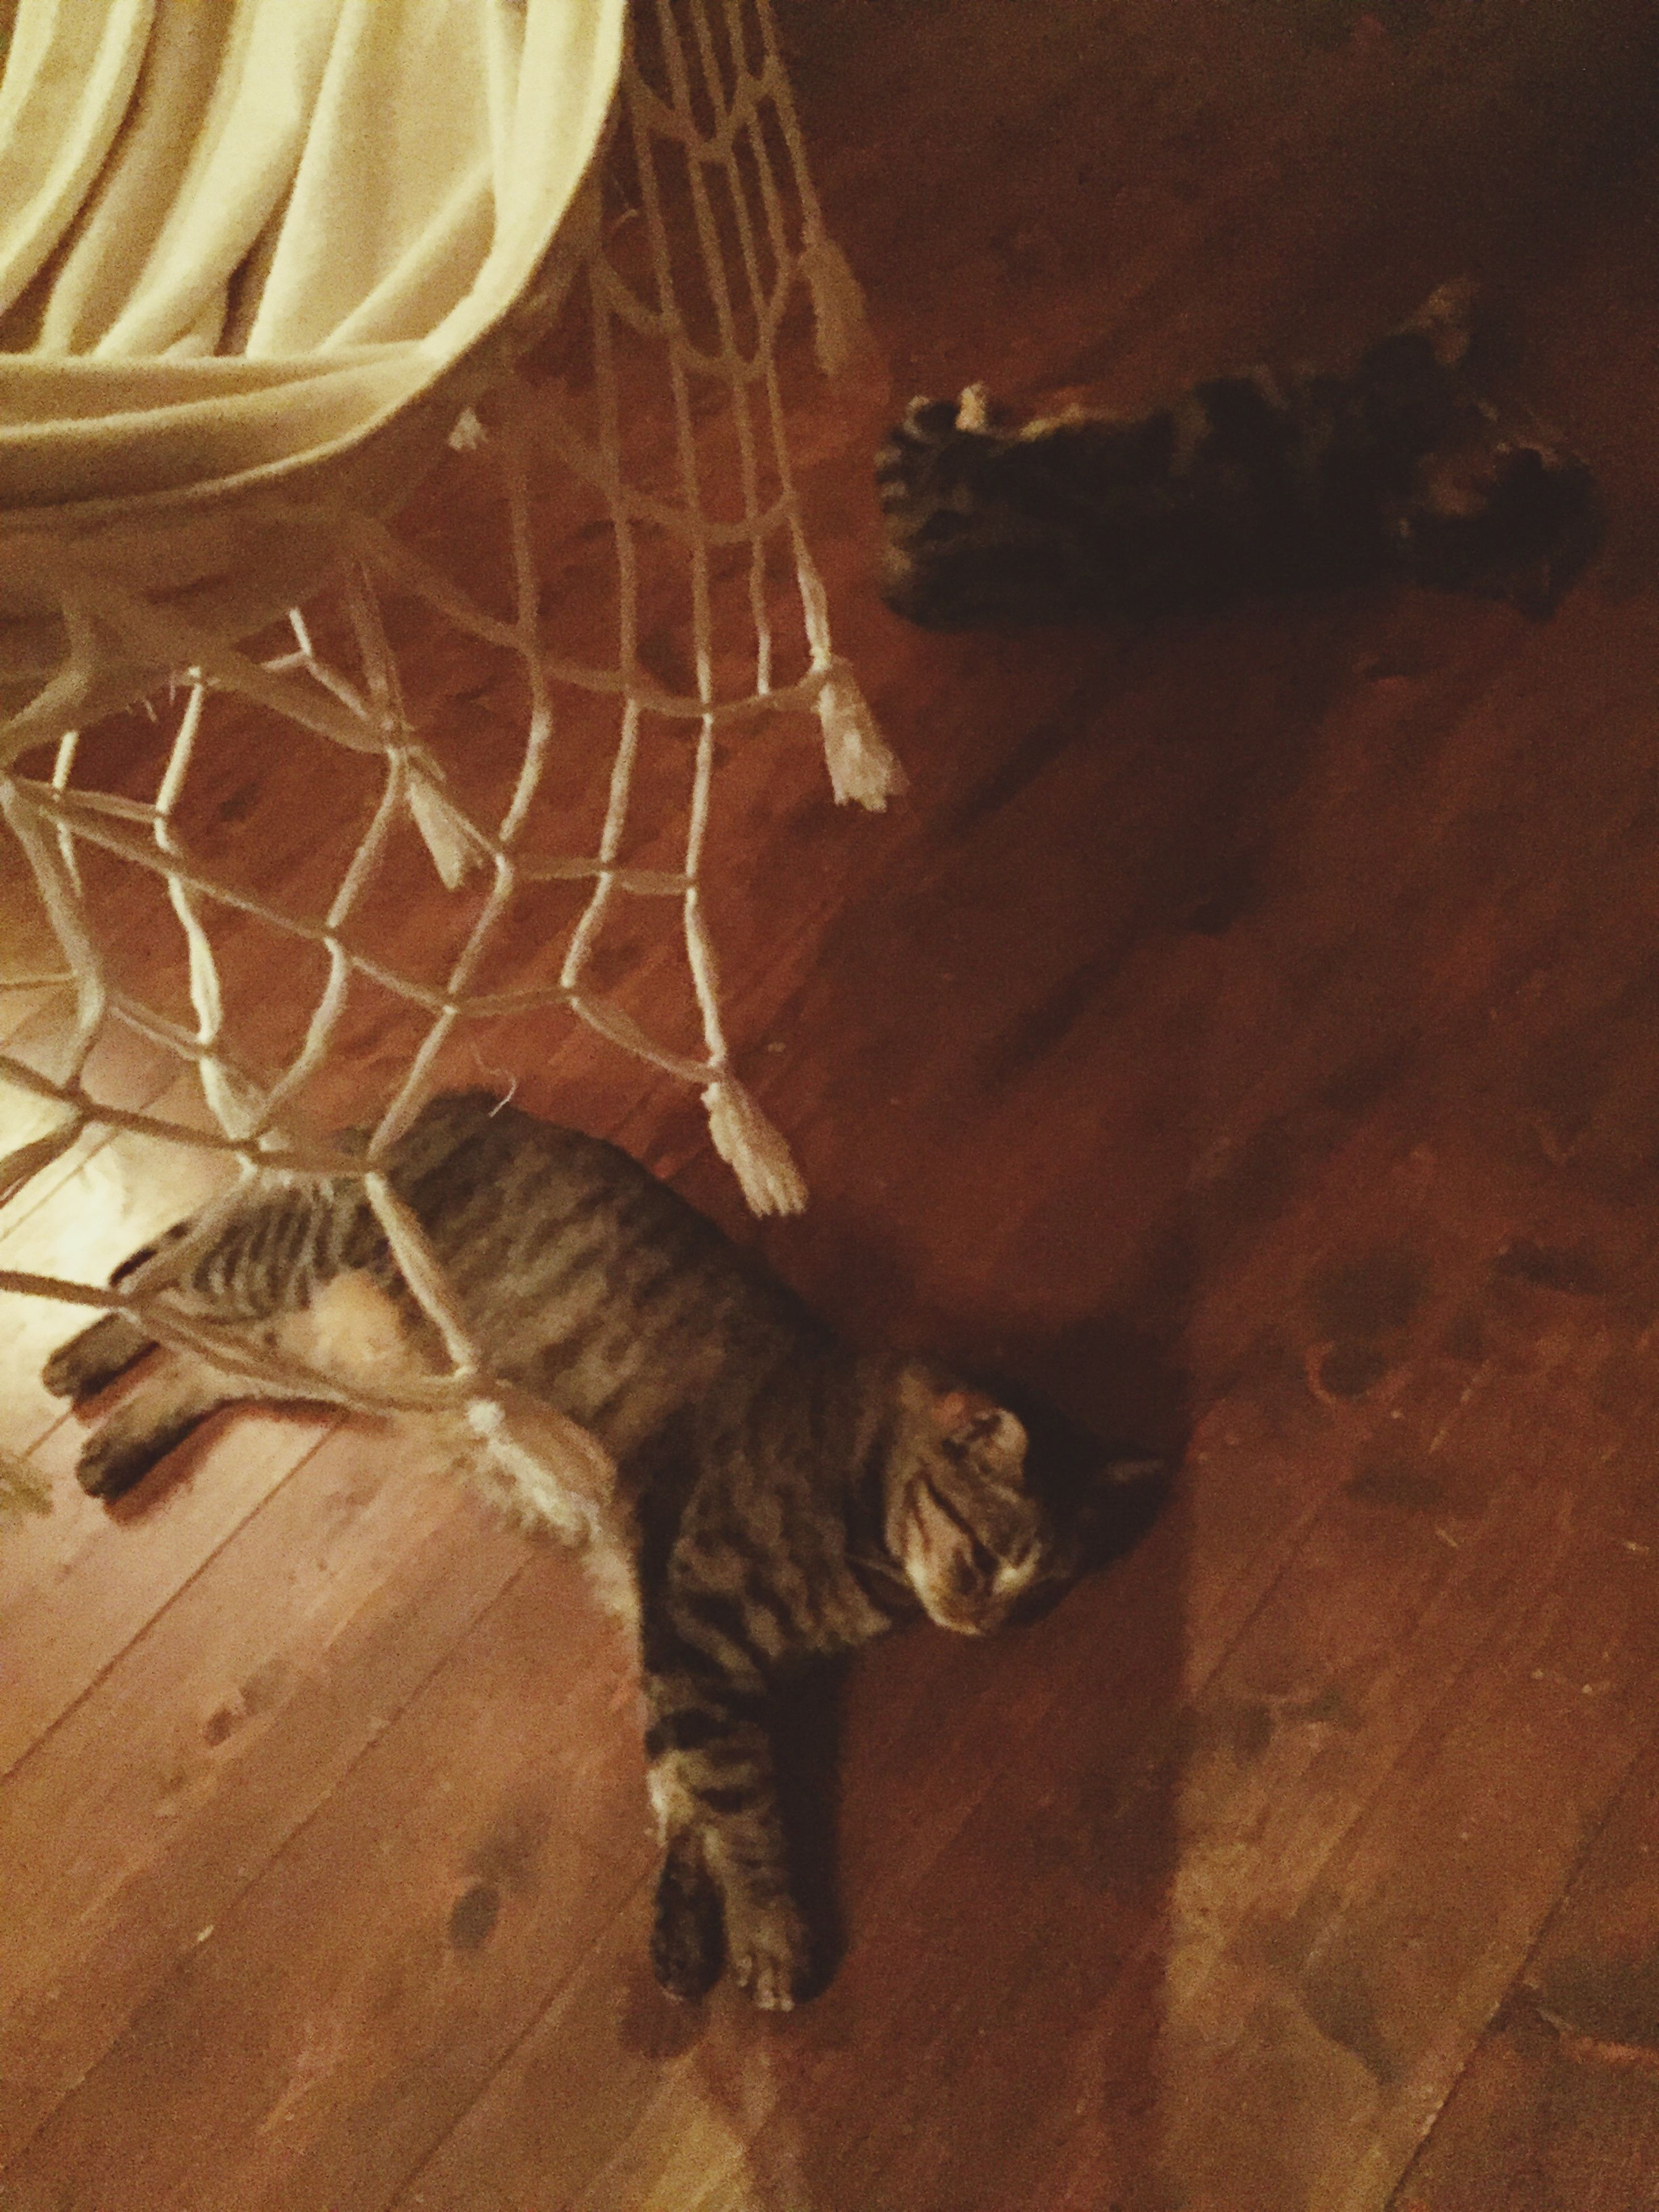 pets, domestic animals, domestic cat, one animal, animal themes, cat, mammal, indoors, high angle view, relaxation, feline, resting, selective focus, zoology, at home, animal, cozy, hiding